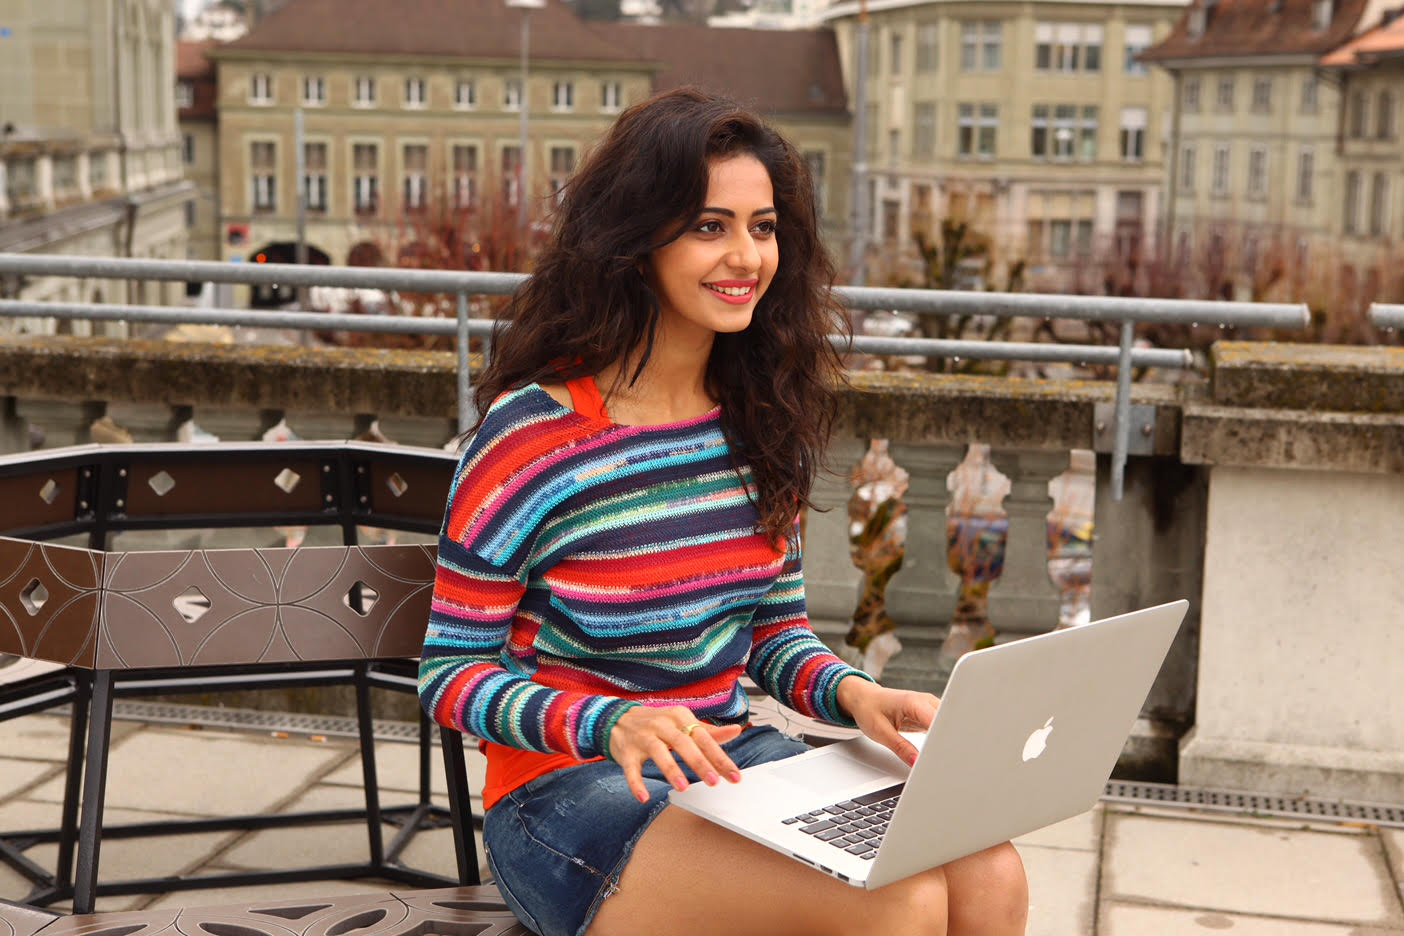 kick 2 movie first weekend box office collection